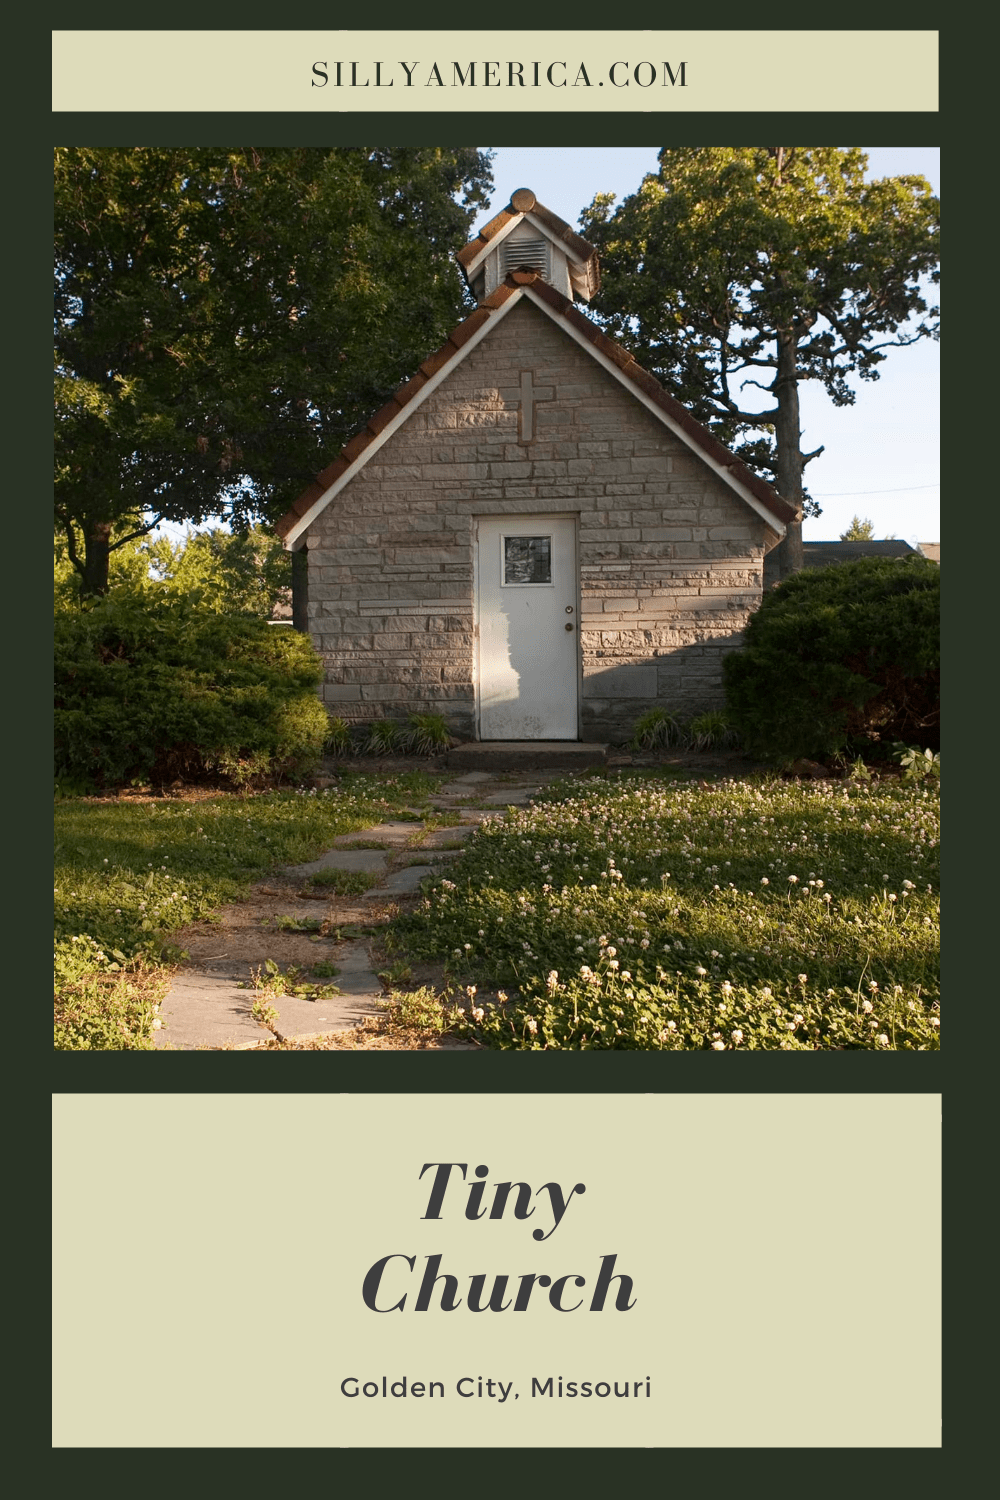 The Tiny Church in Golden City, Missouri can be found in the town's small park. It was build in the 1950s or 60s by a local boy scout troop. #MissouriRoadsideAttractions #MissouriRoadsideAttraction #RoadsideAttractions #RoadsideAttraction #RoadTrip #MissouriRoadTrip #MissouriRoadTripMap #PlacestoVisitinMissouri #MissouriRoadTripIdeas #MissouriTravelRoadTrip